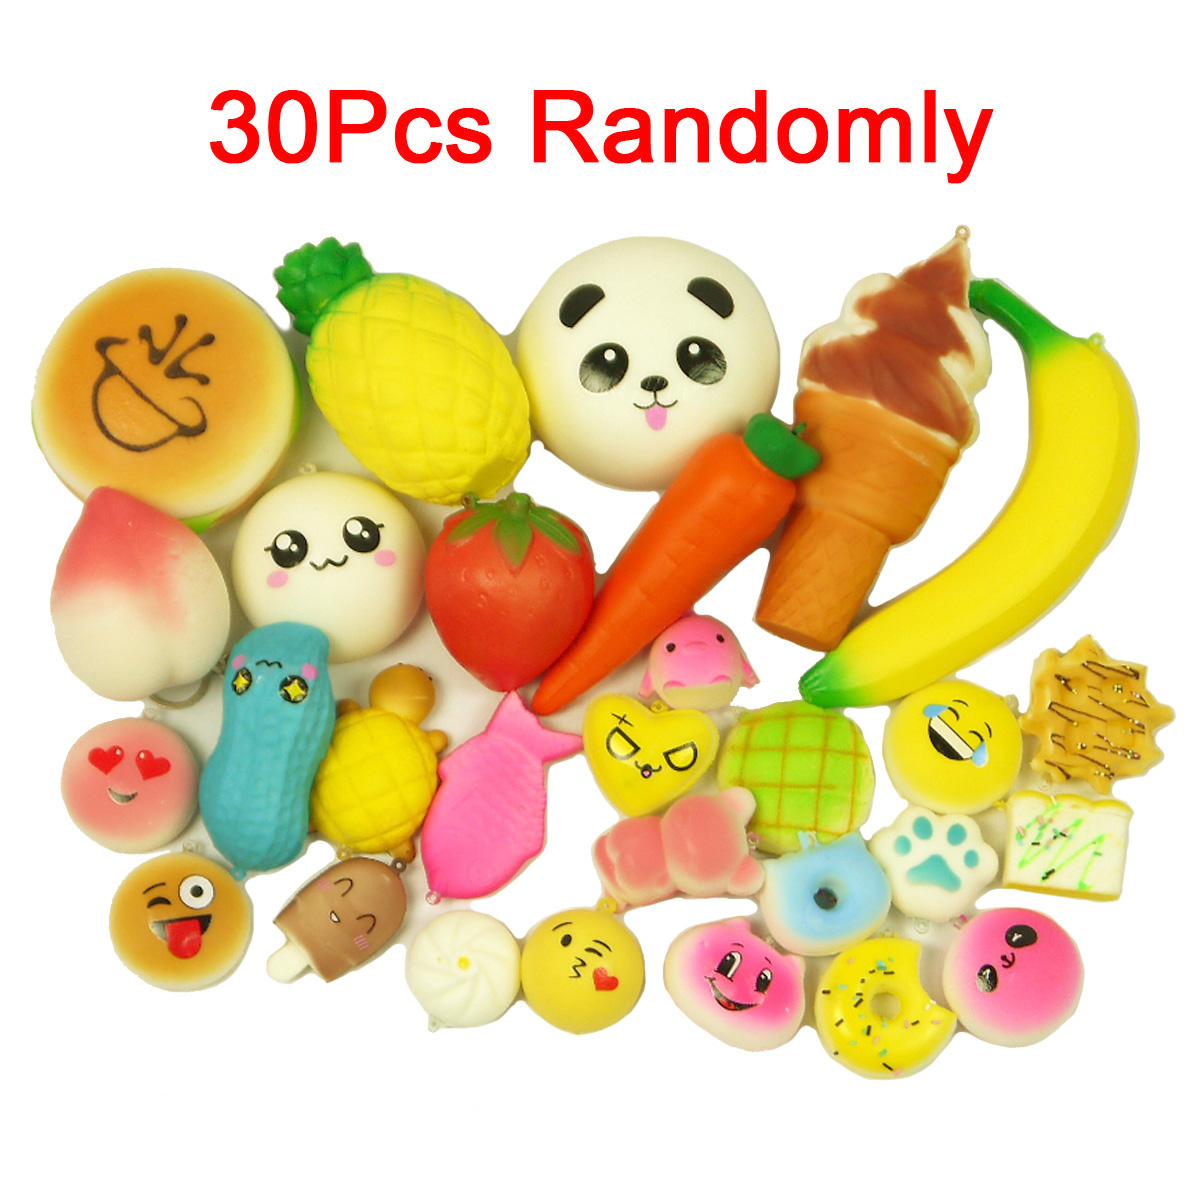 Squishy Mushy Target : 30PCS Kawaii Squishies Soft Food Panda Bread Mini Donuts Phone Straps Charms eBay